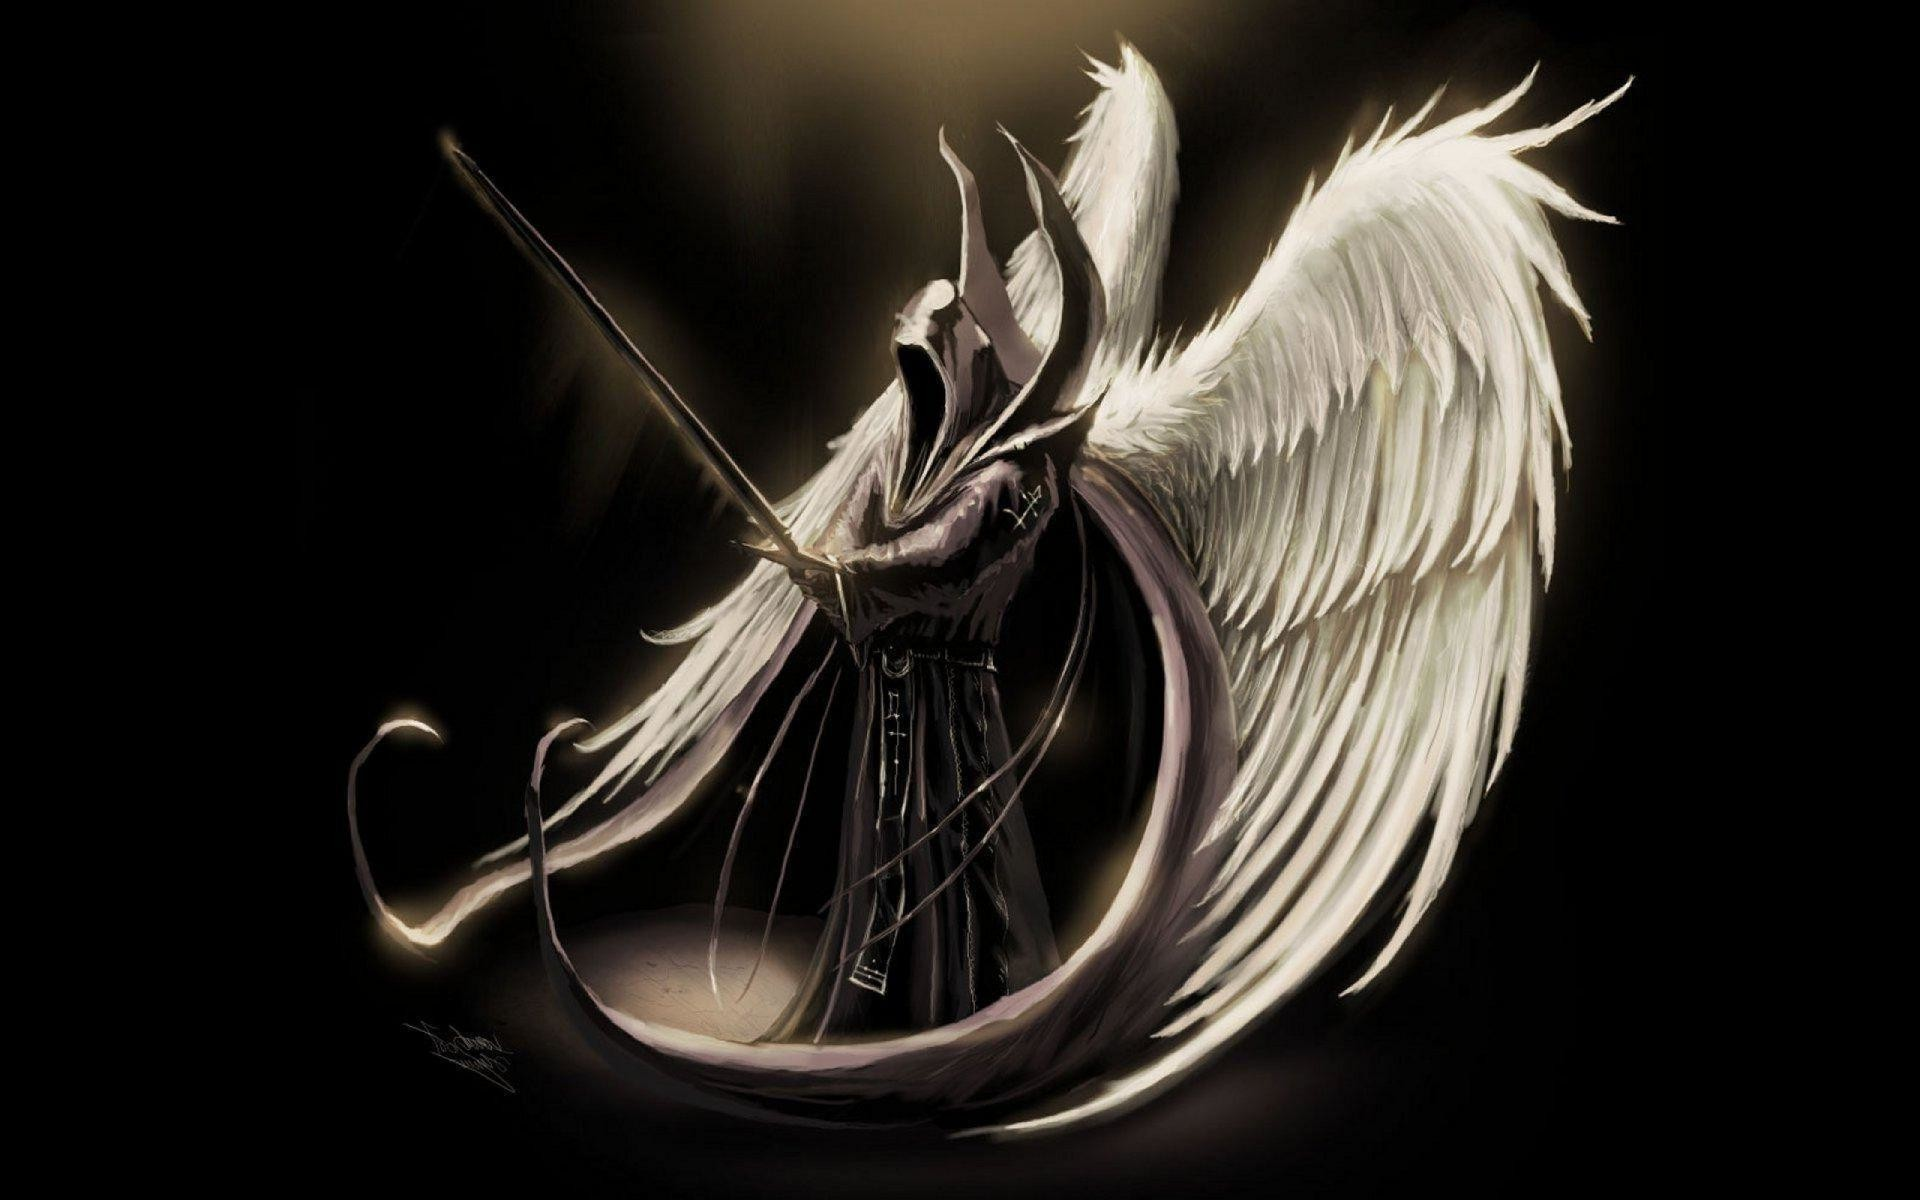 archangel wallpapers for mobile many hd wallpaper